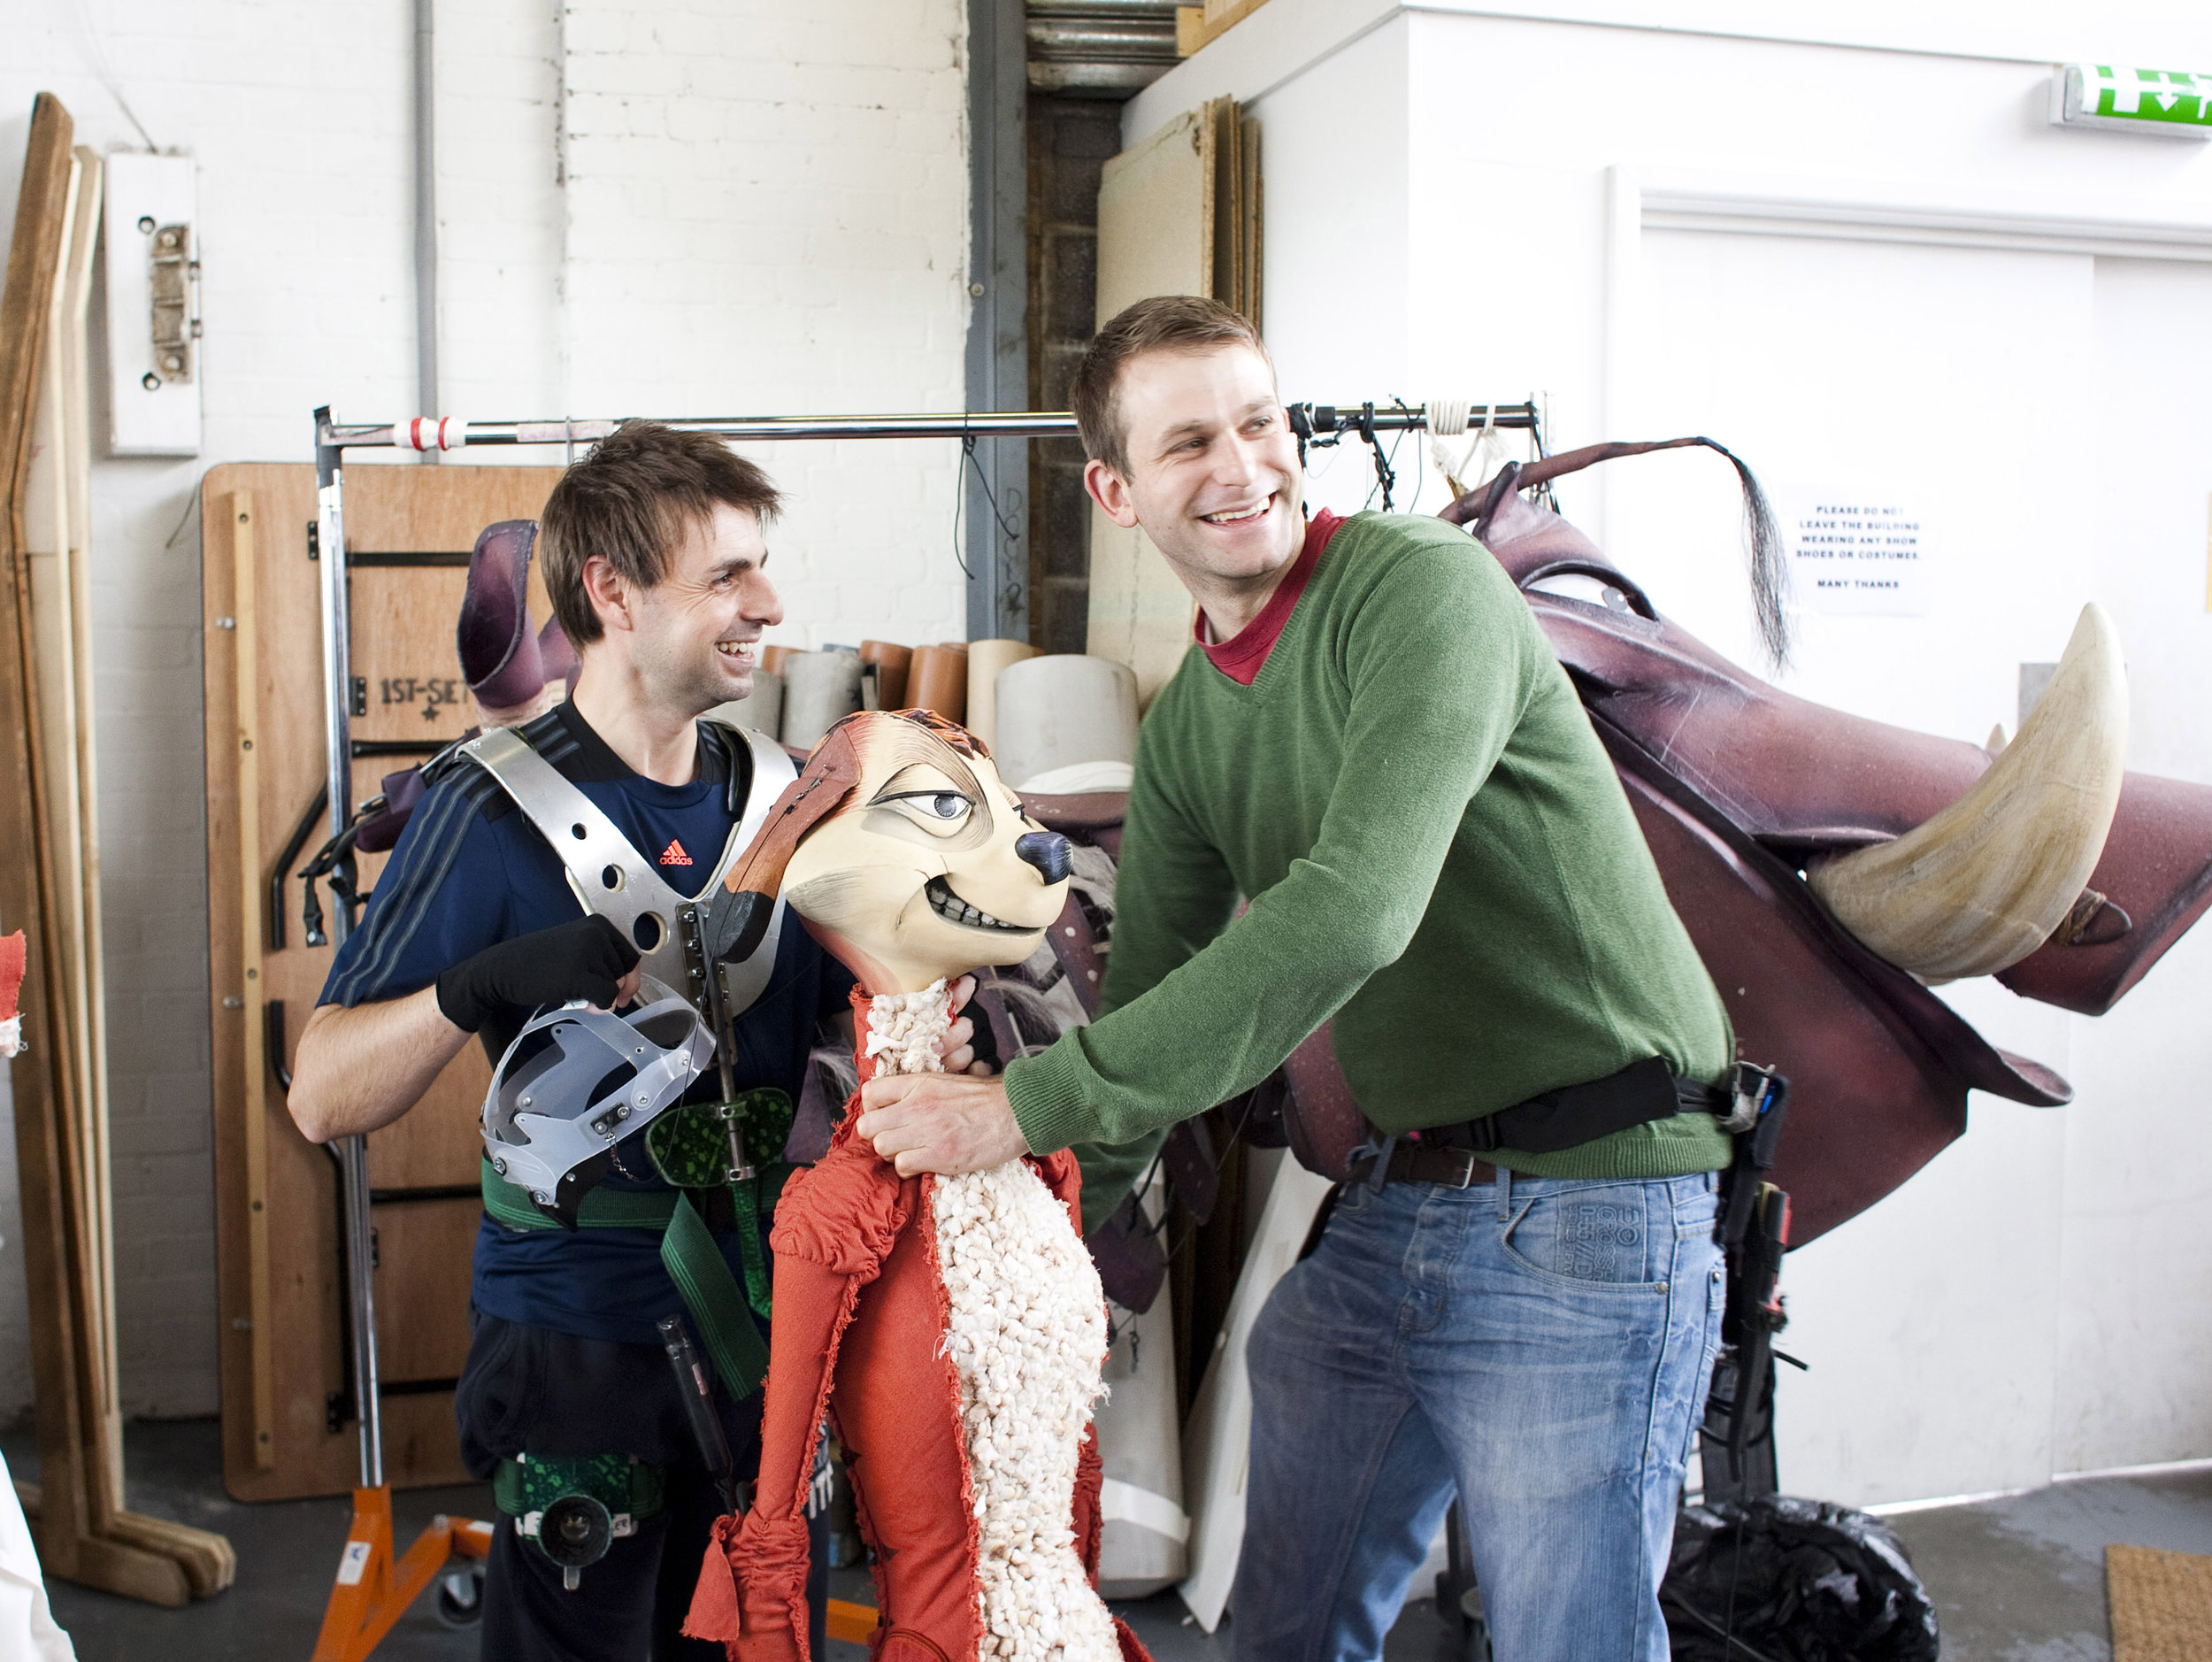 Will Pearce pictured with John Hasler as Timon during the 2014 UK Tour of Disney's  The Lion King